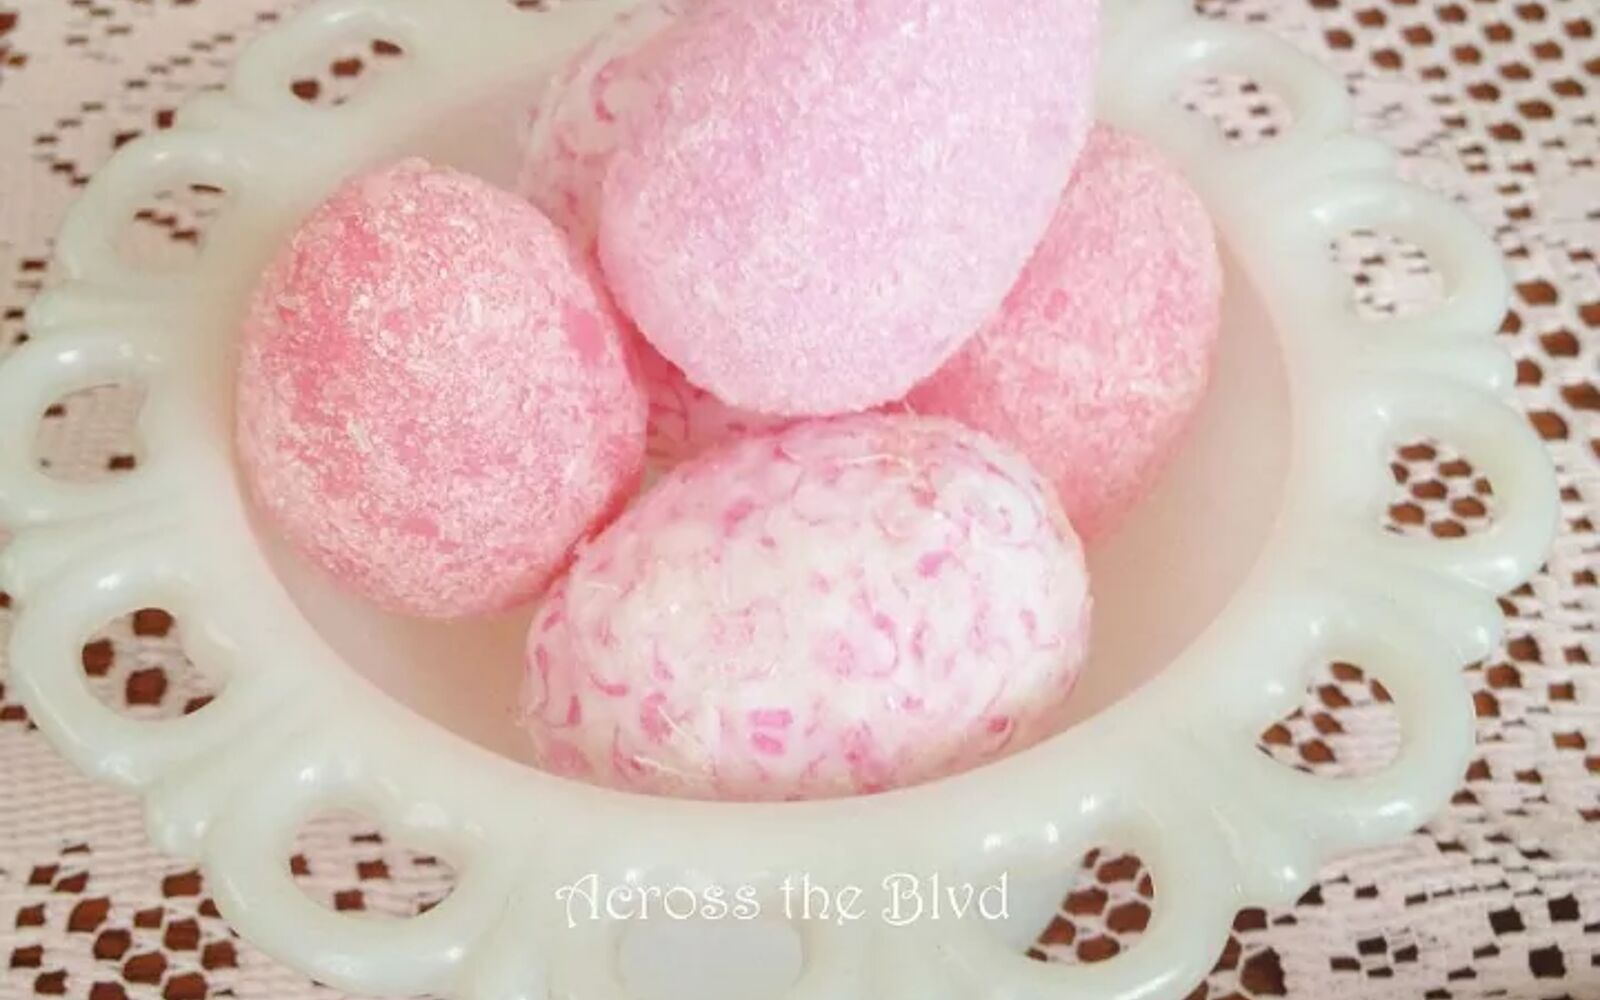 s 25 quick easter egg ideas that are just too stinkin cute, crafts, easter decorations, Create some glittered pink beauties